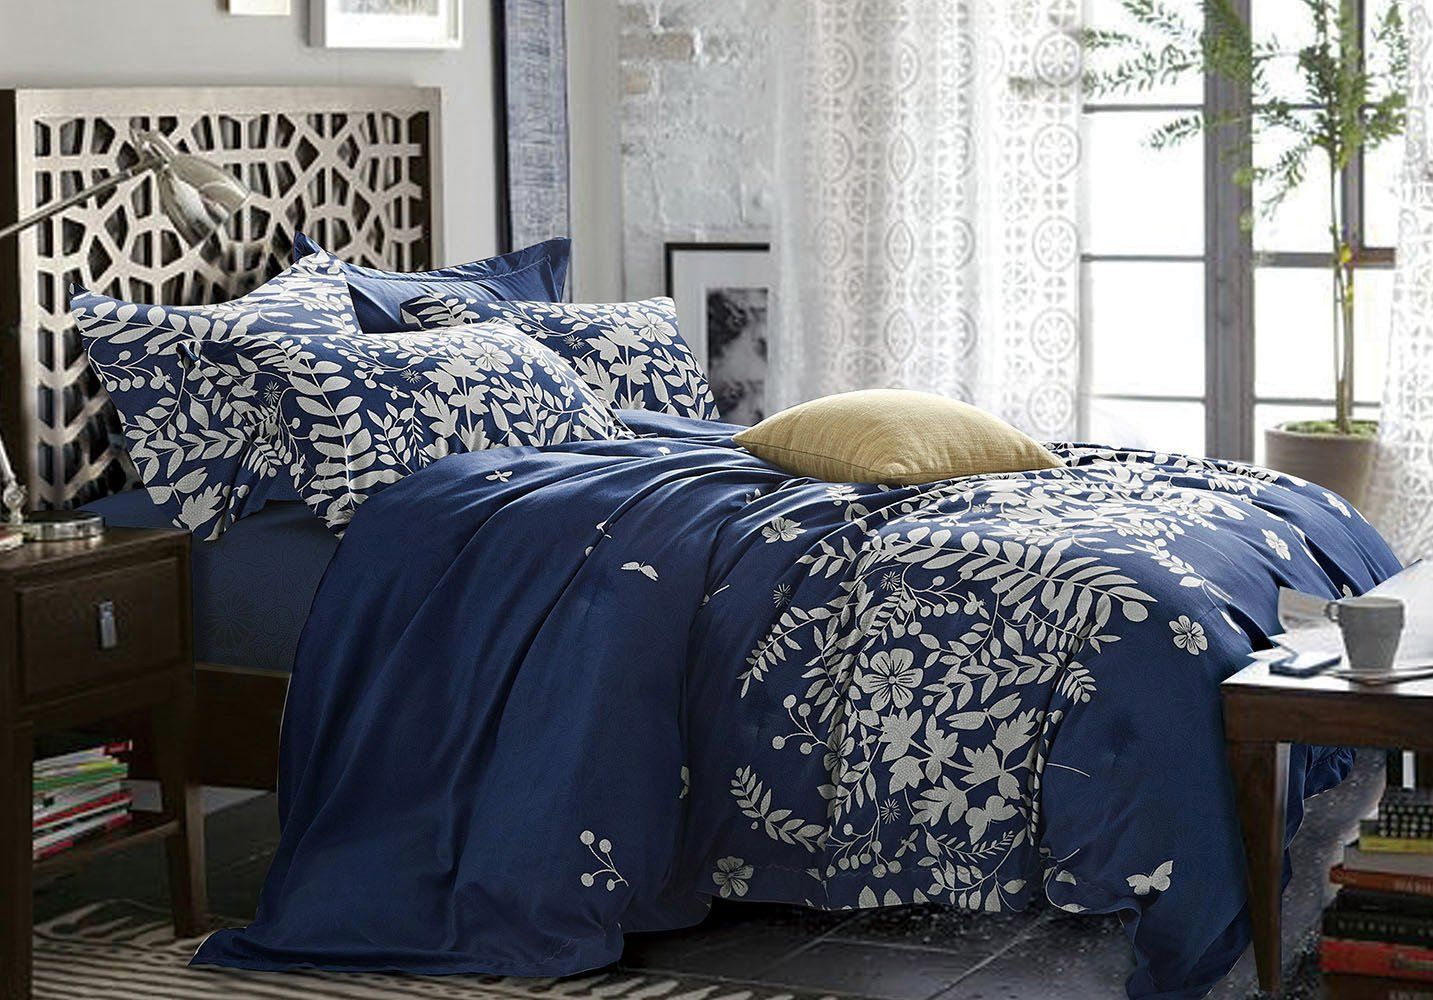 Perfect Home 4 Piece Floyd Navy Blue And White Reversible Hotel Collection King Duvet Cover Set Navy Clic Navy Duvet Covers Duvet Cover Sets Blue Duvet Cover